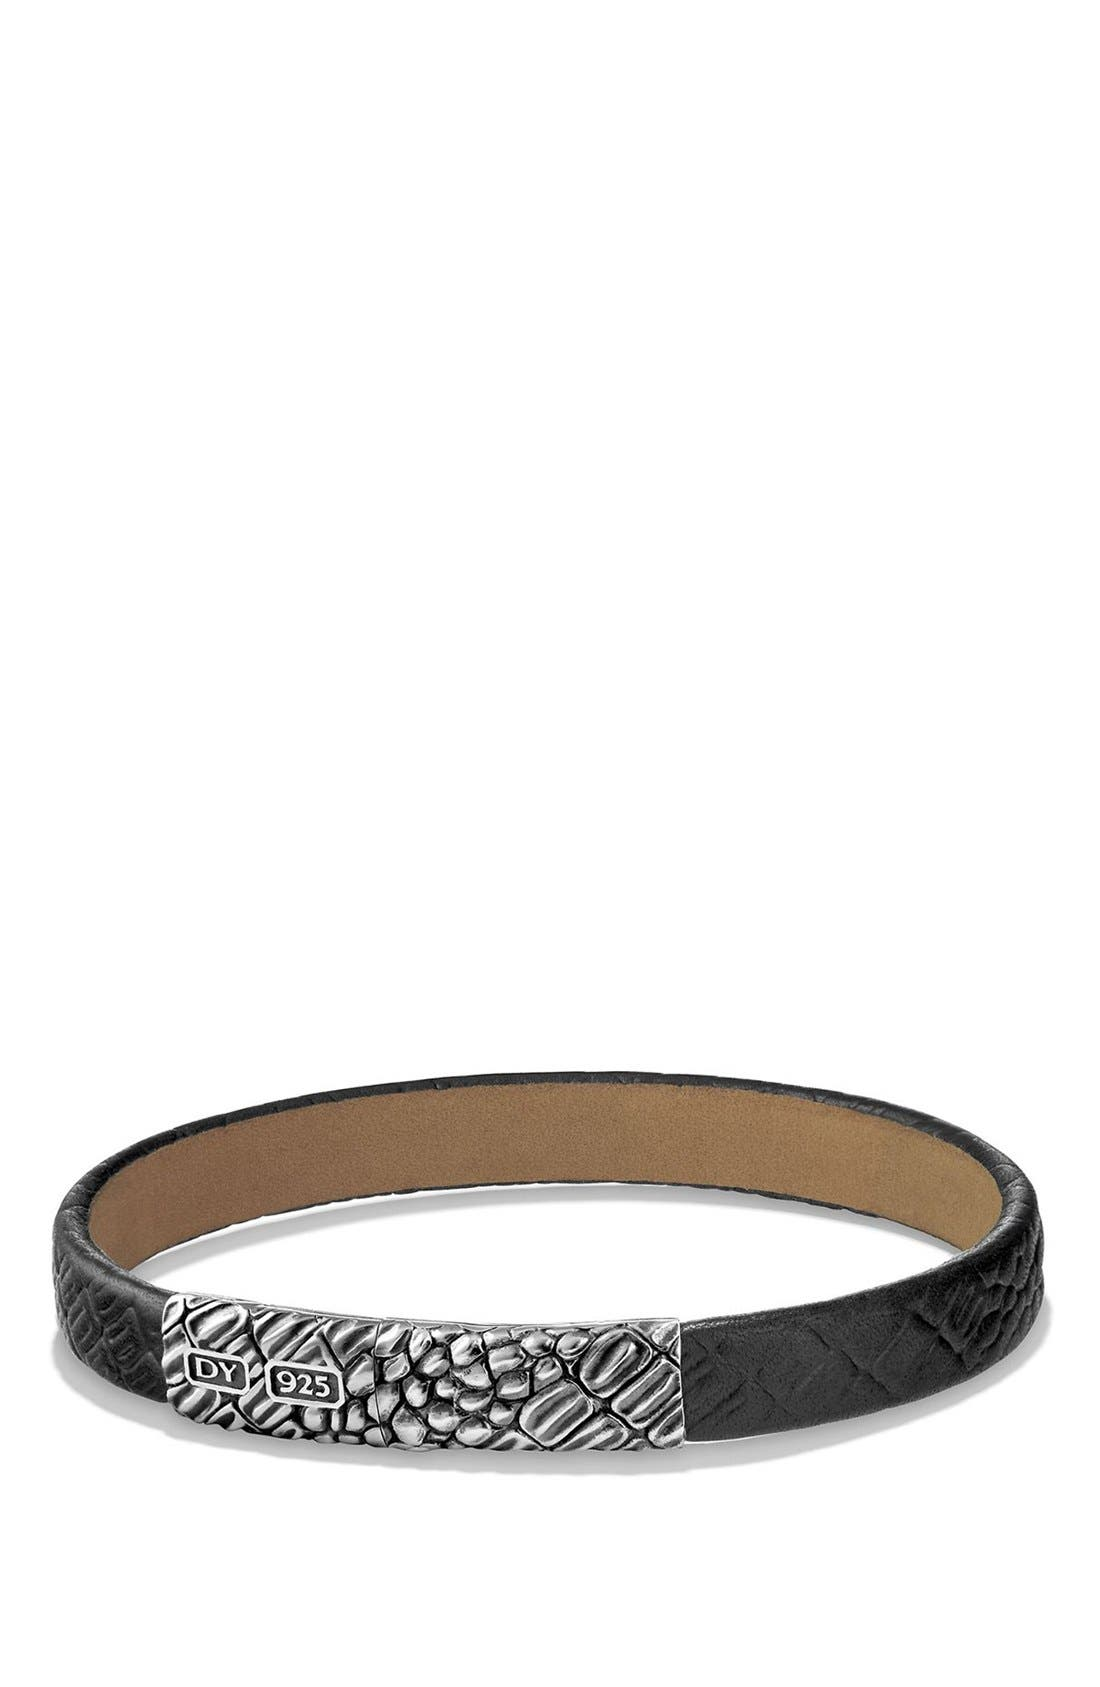 David Yurman Gator Leather Bracelet